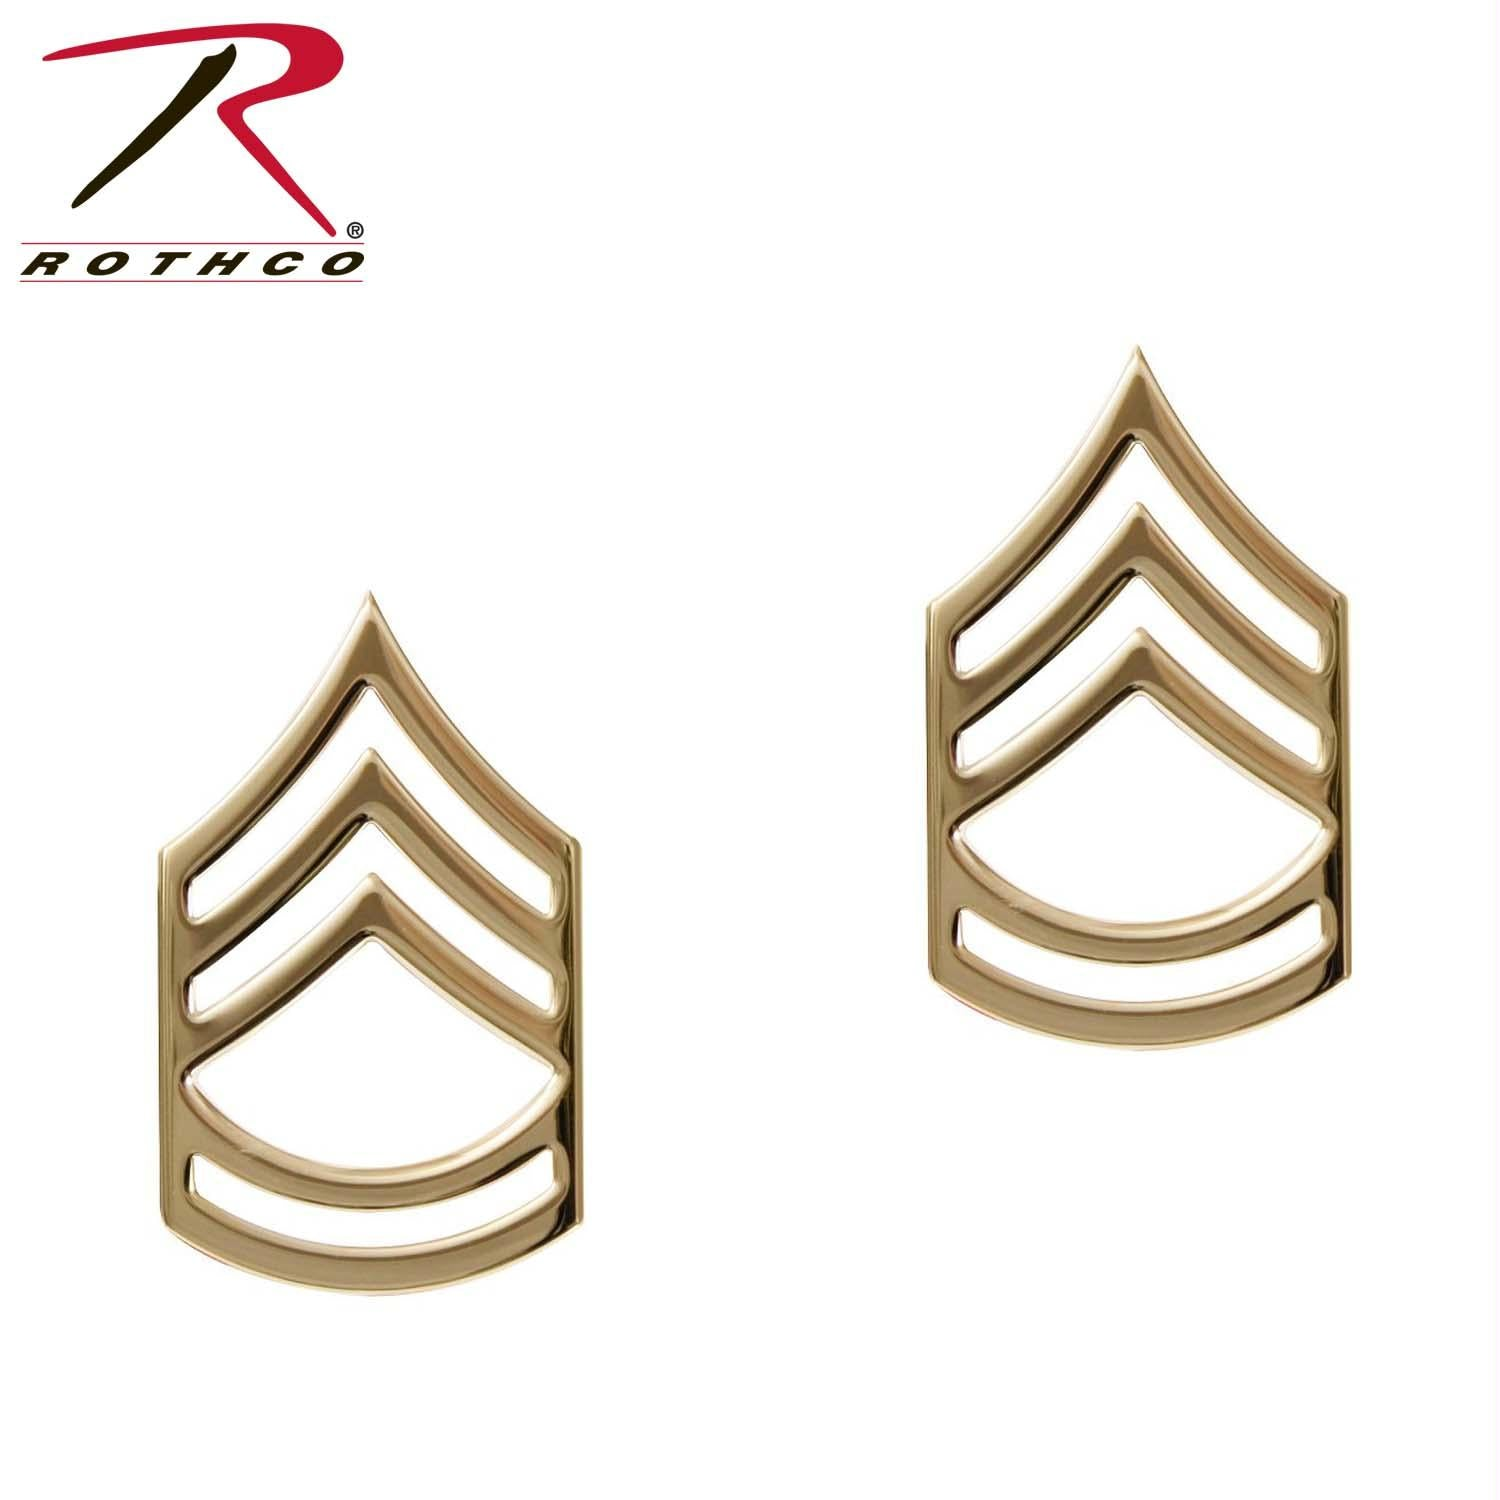 Rothco Sergeant First Class Polished Insignia Pin - Gold